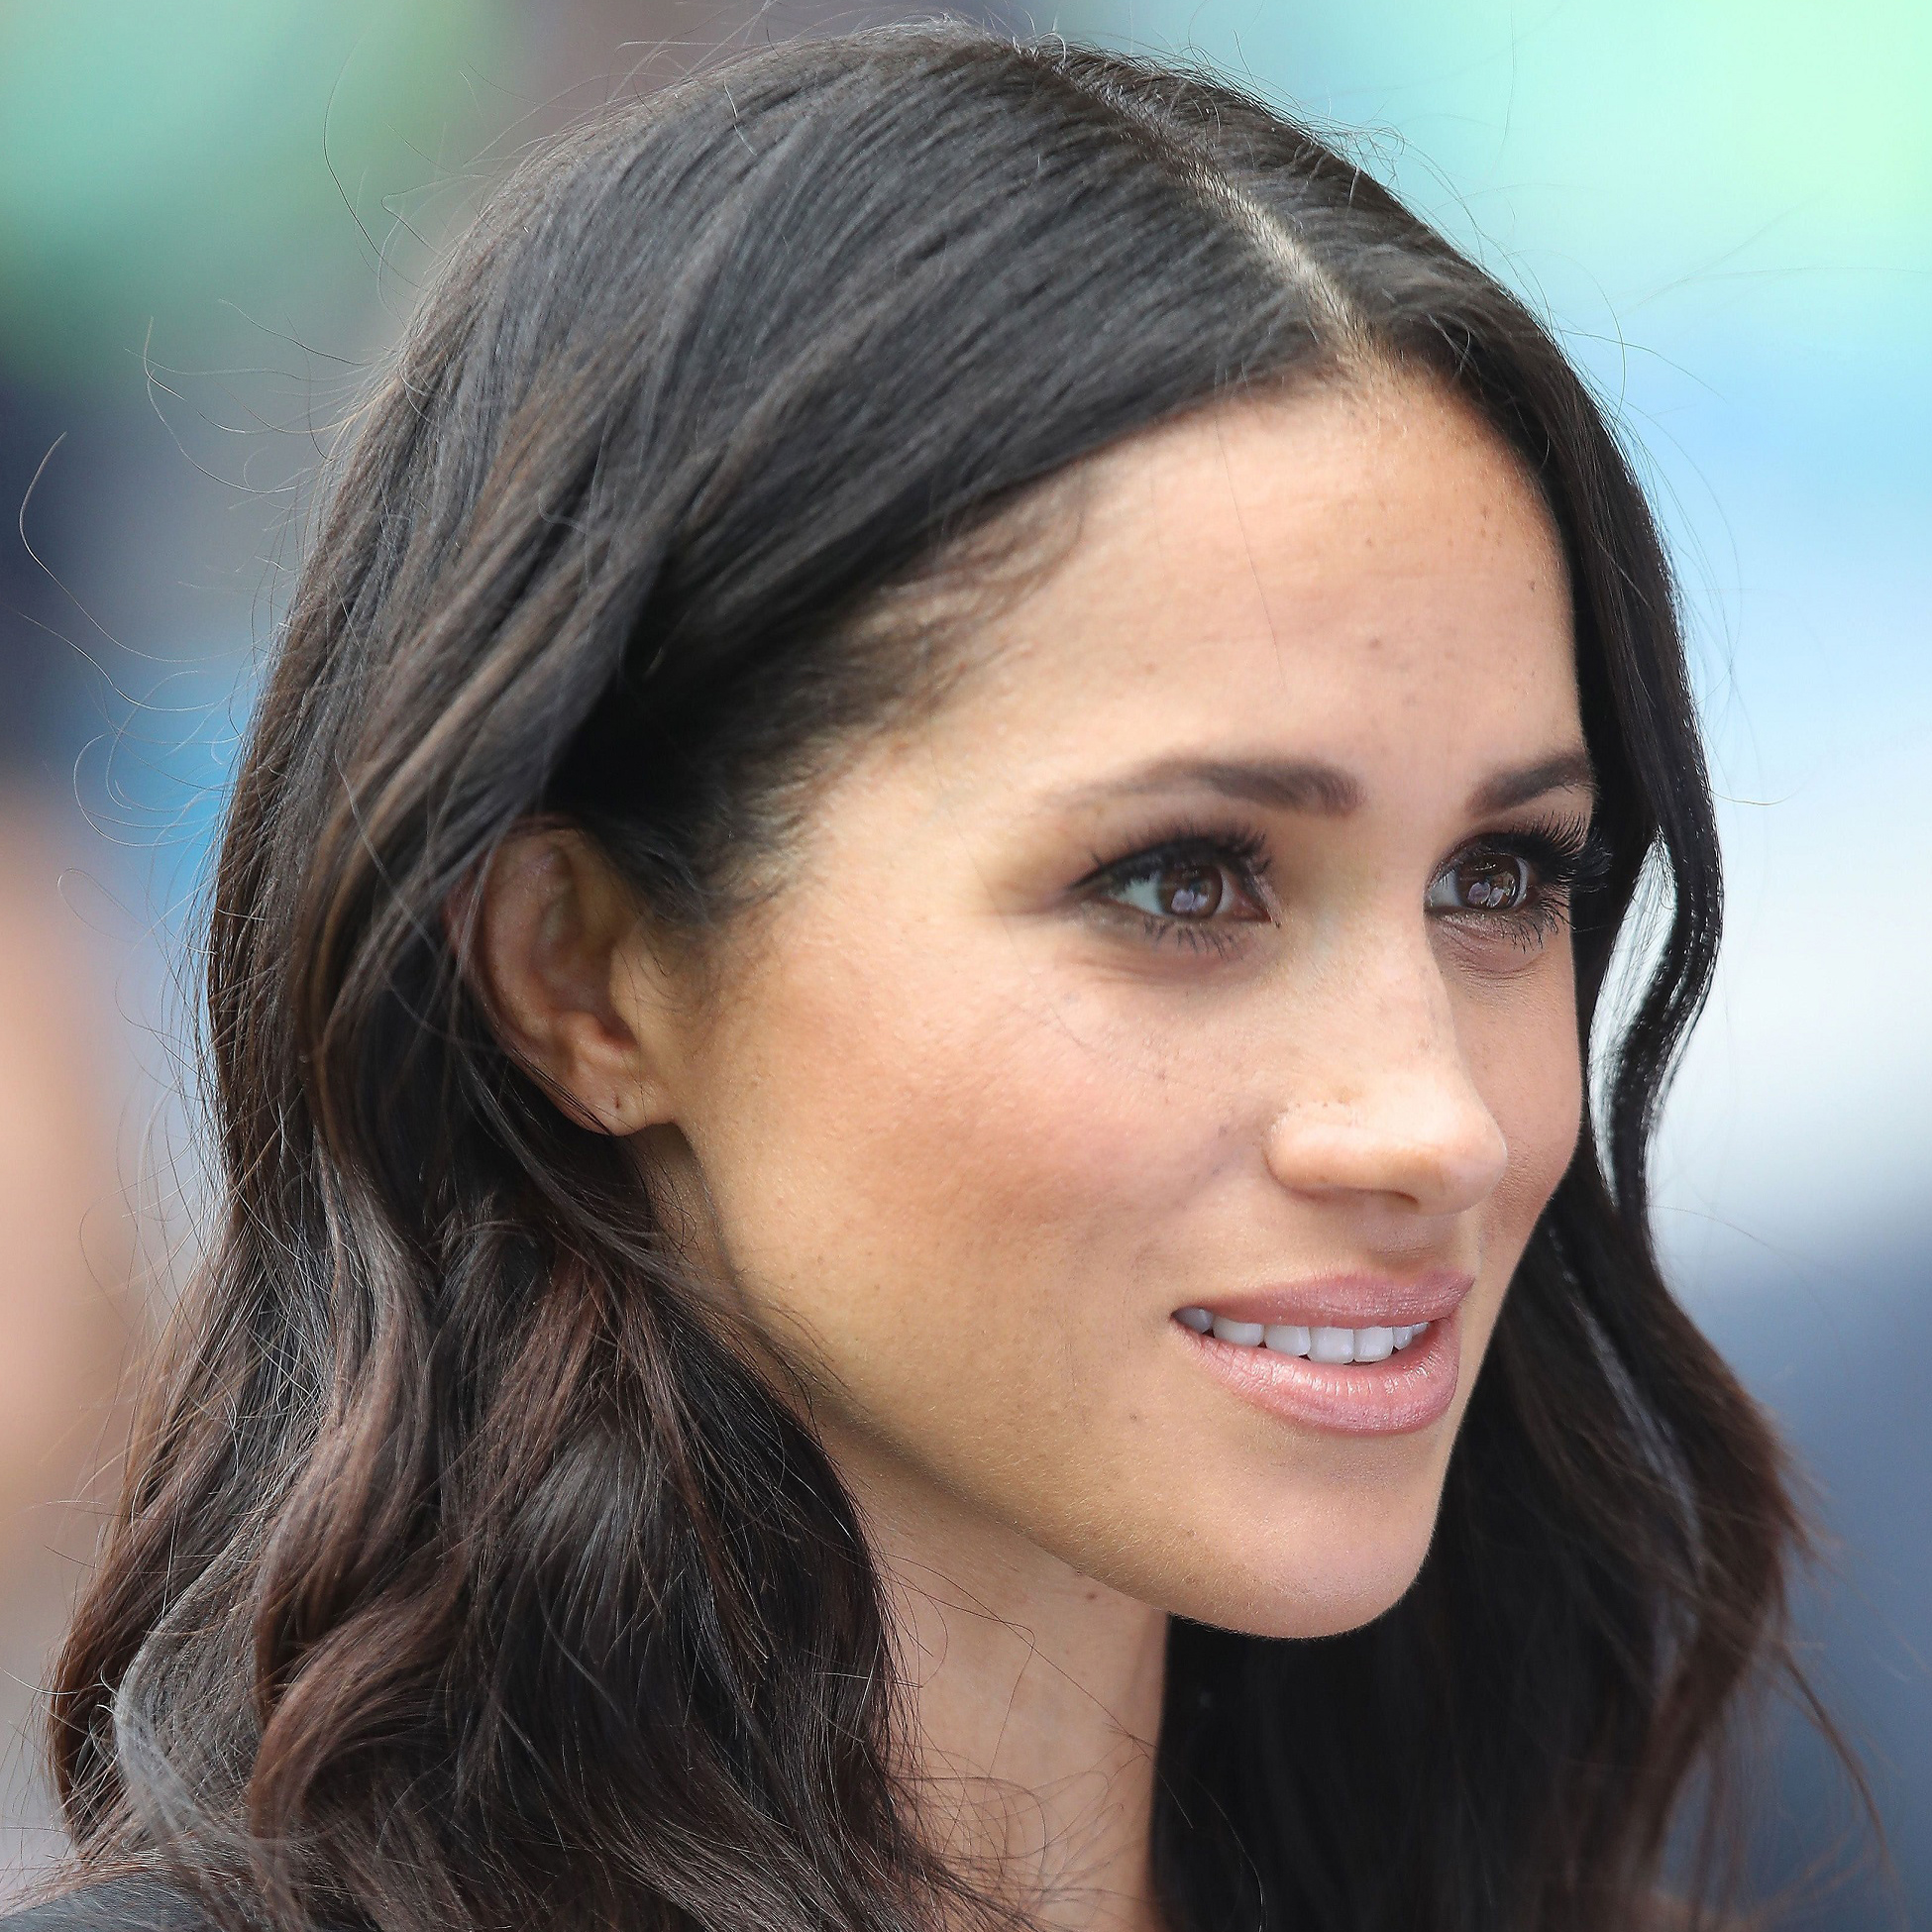 meghan markle a t elle chang de couleur de cheveux la. Black Bedroom Furniture Sets. Home Design Ideas